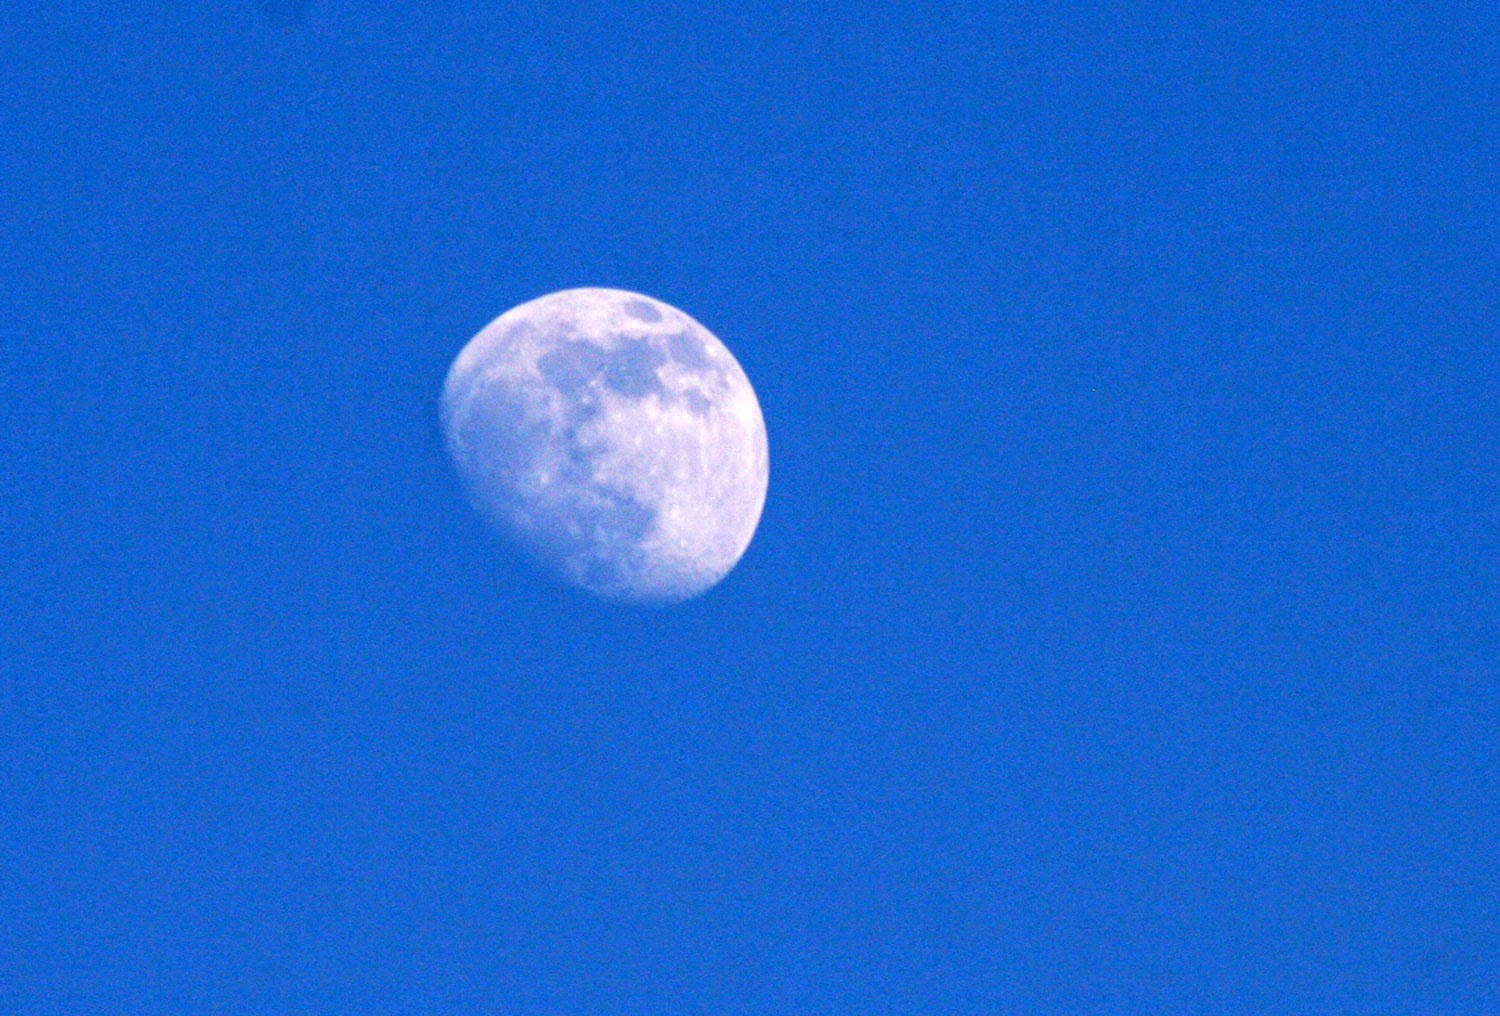 Gorgeous moon in a rich blue sky